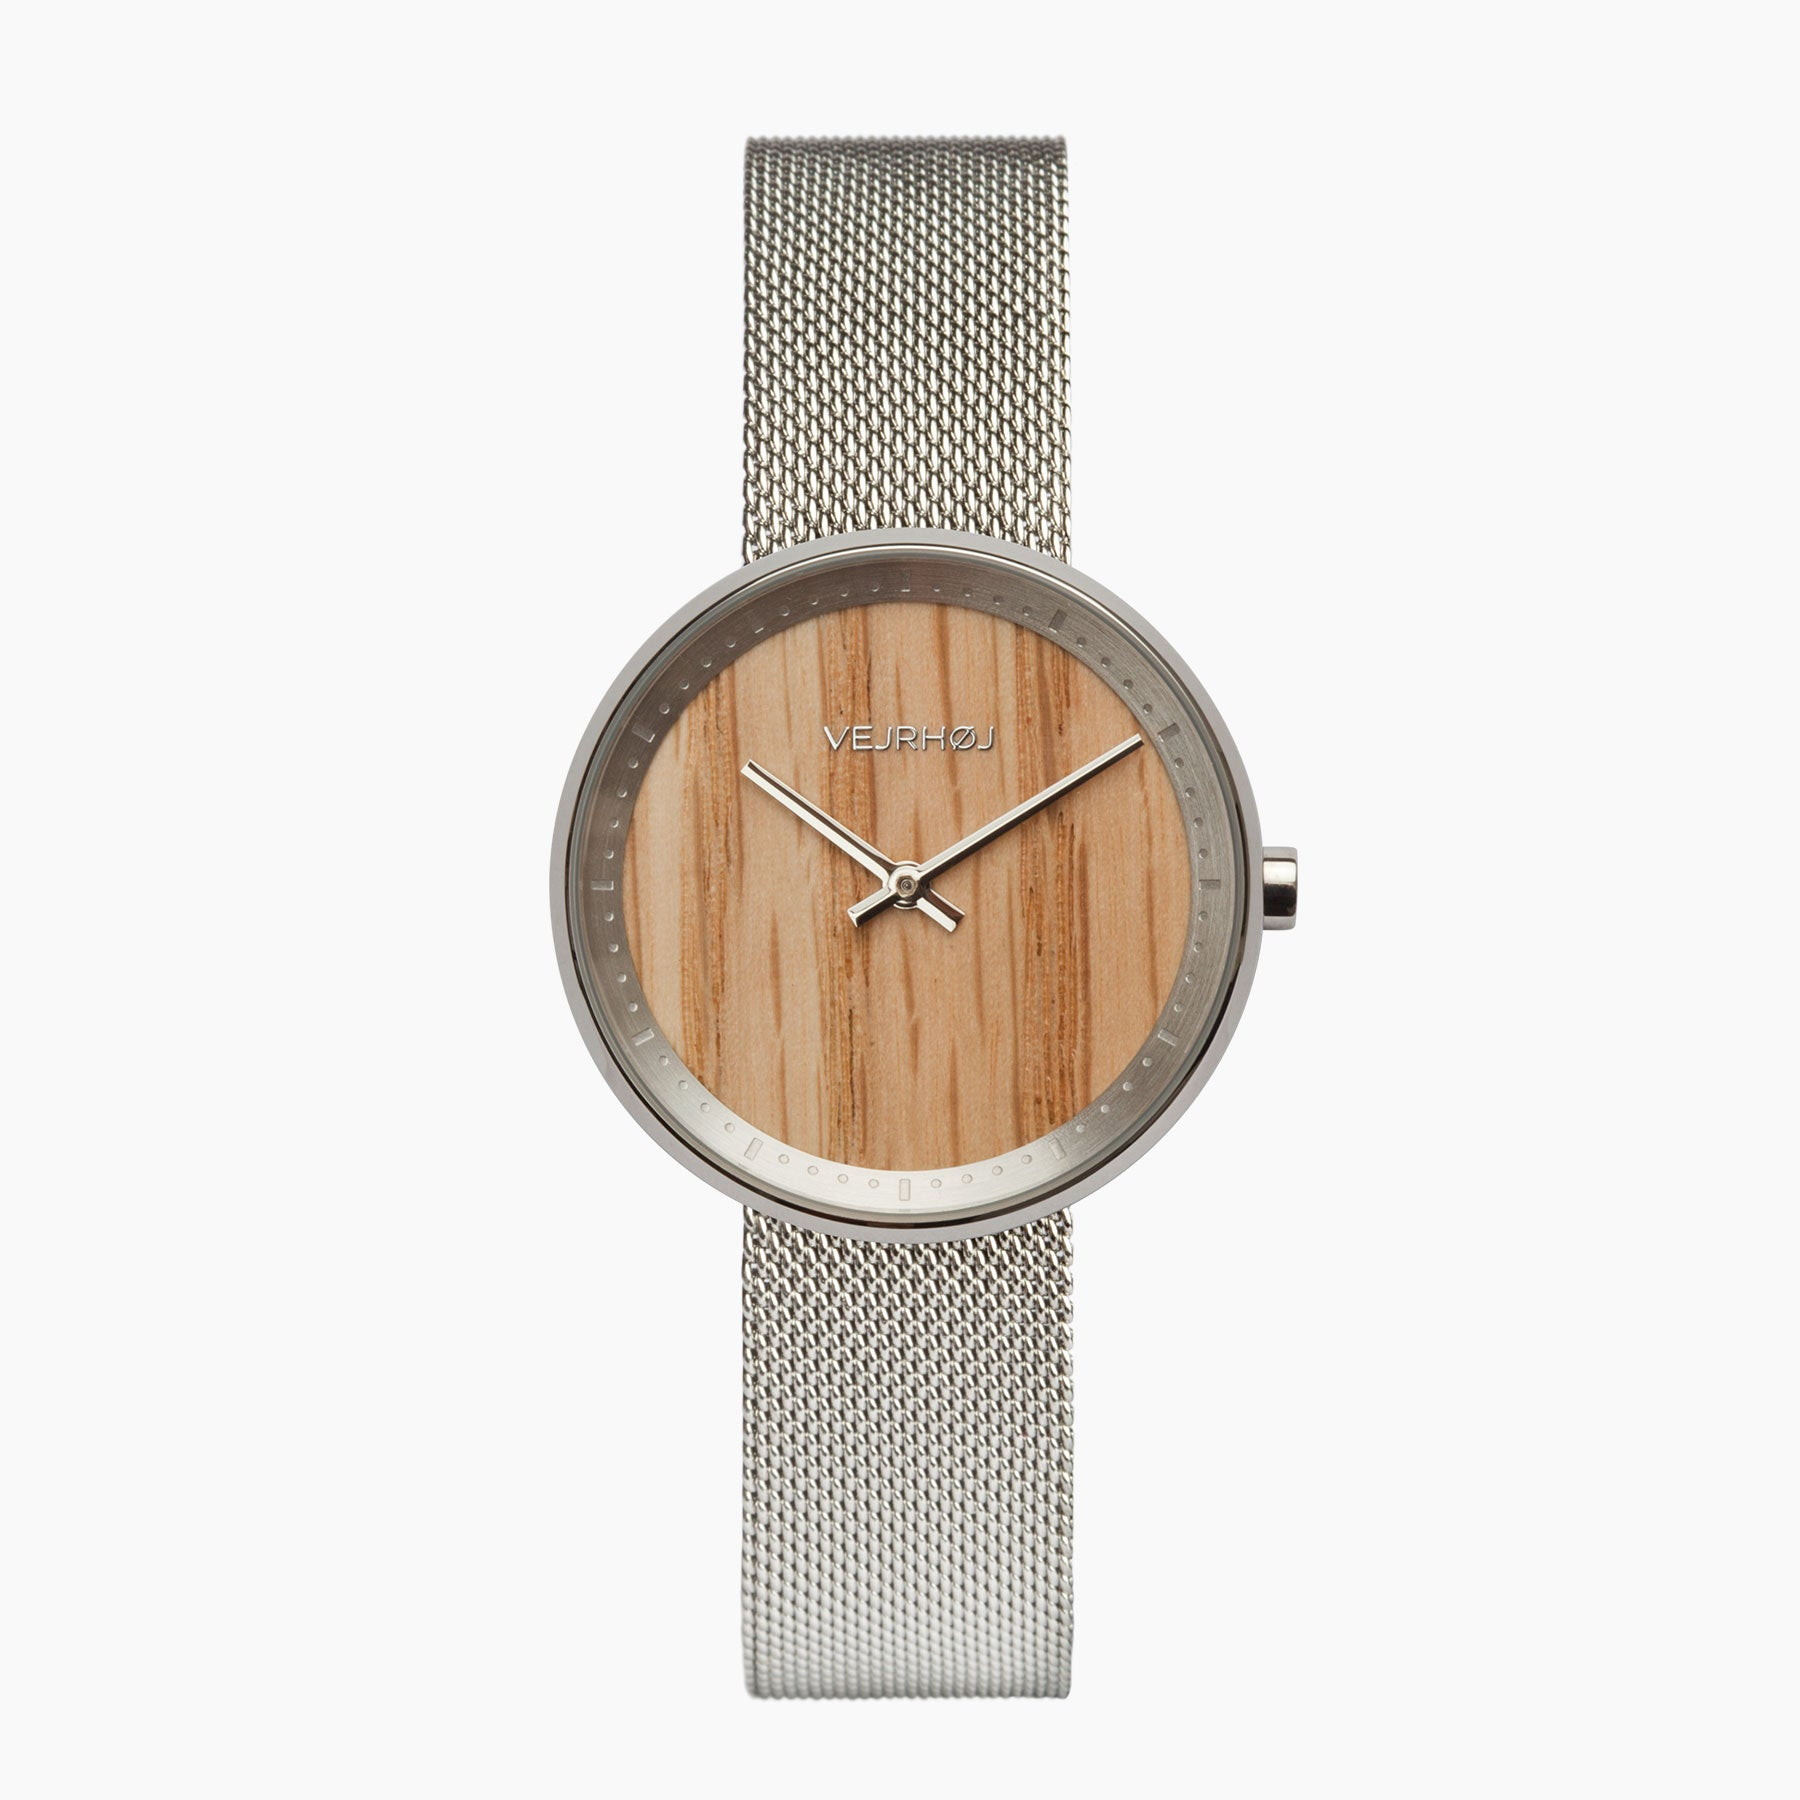 c2abacf93b5b4 Women's Wood Watch - Silver Mesh Band - By VEJRHØJ